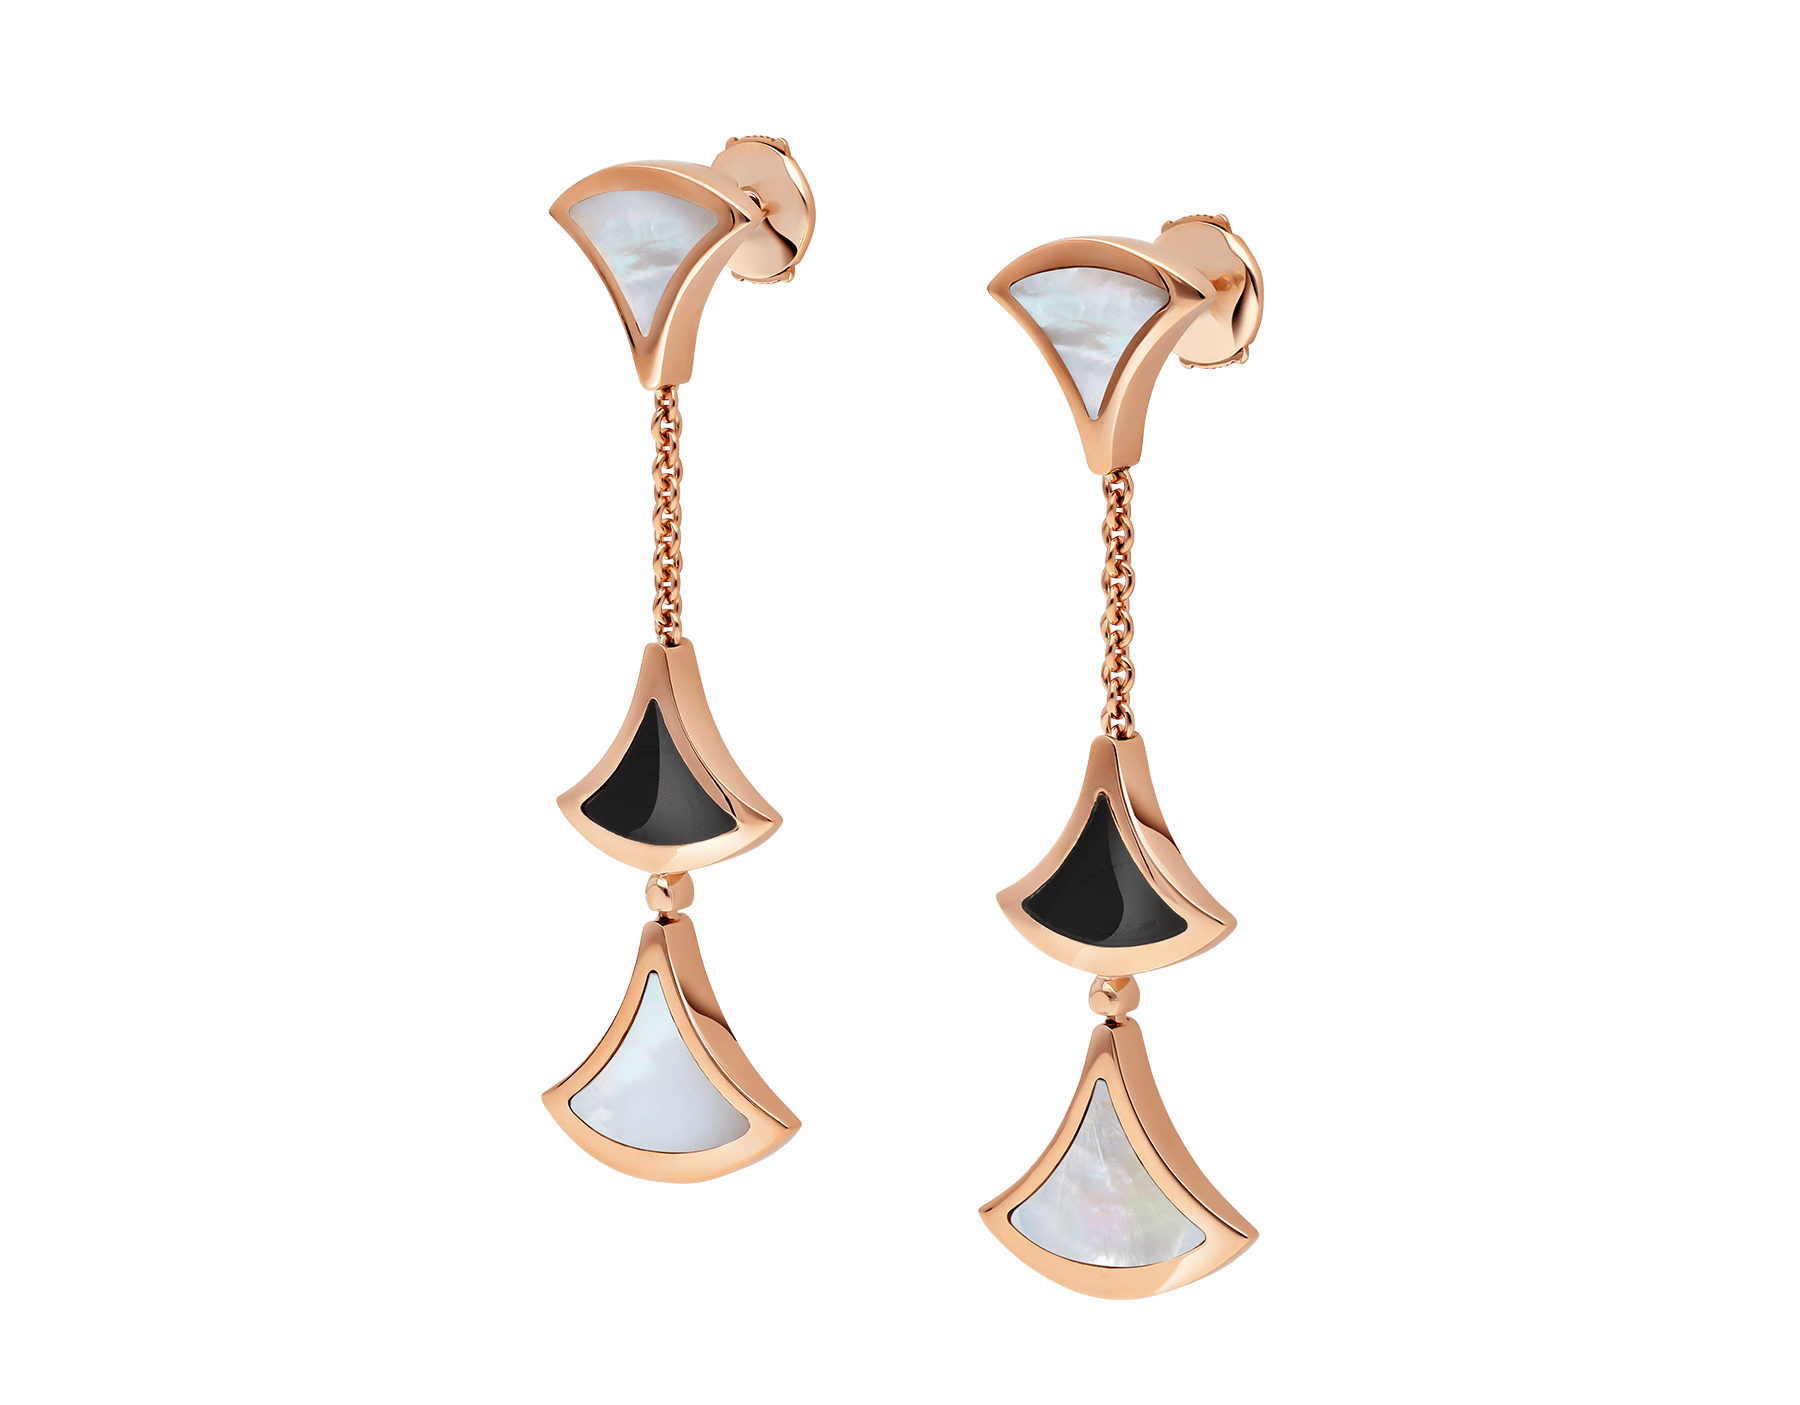 DIVAS' DREAM earrings in 18 kt rose gold set with onyx and mother-of-pearl elements. 350260 image 2